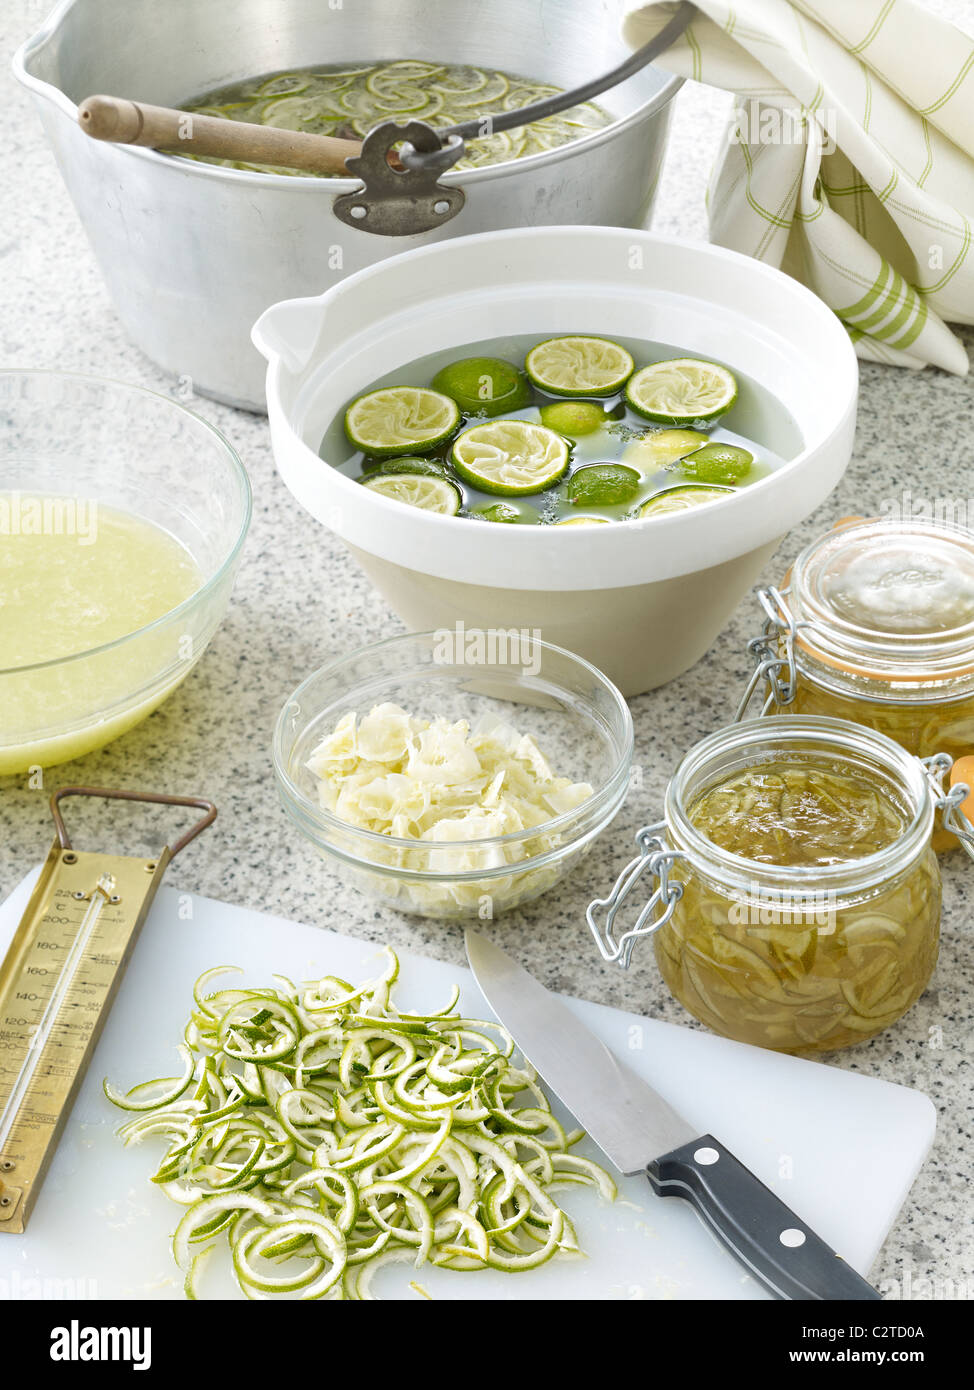 Lime jam making table - Stock Image